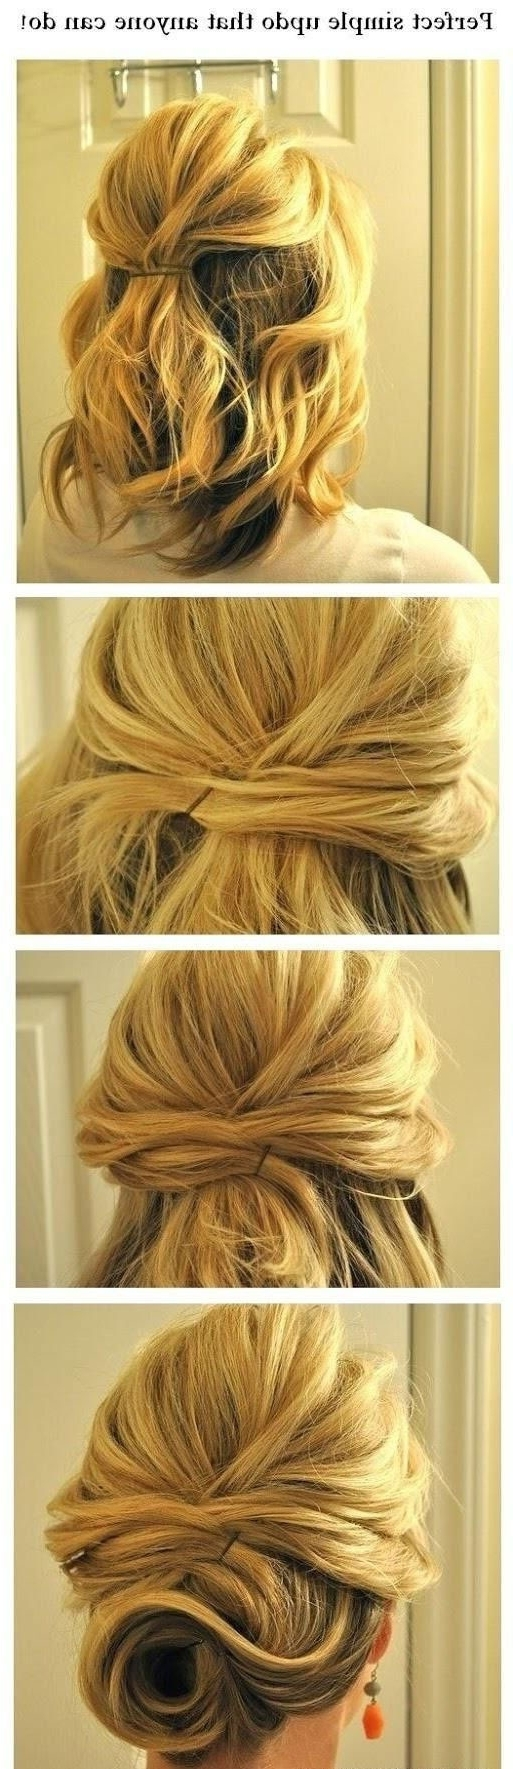 15 Cute And Easy Hairstyle Tutorials For Medium Length Hair – Gurl Intended For Easy Updos For Thick Medium Length Hair (View 7 of 15)